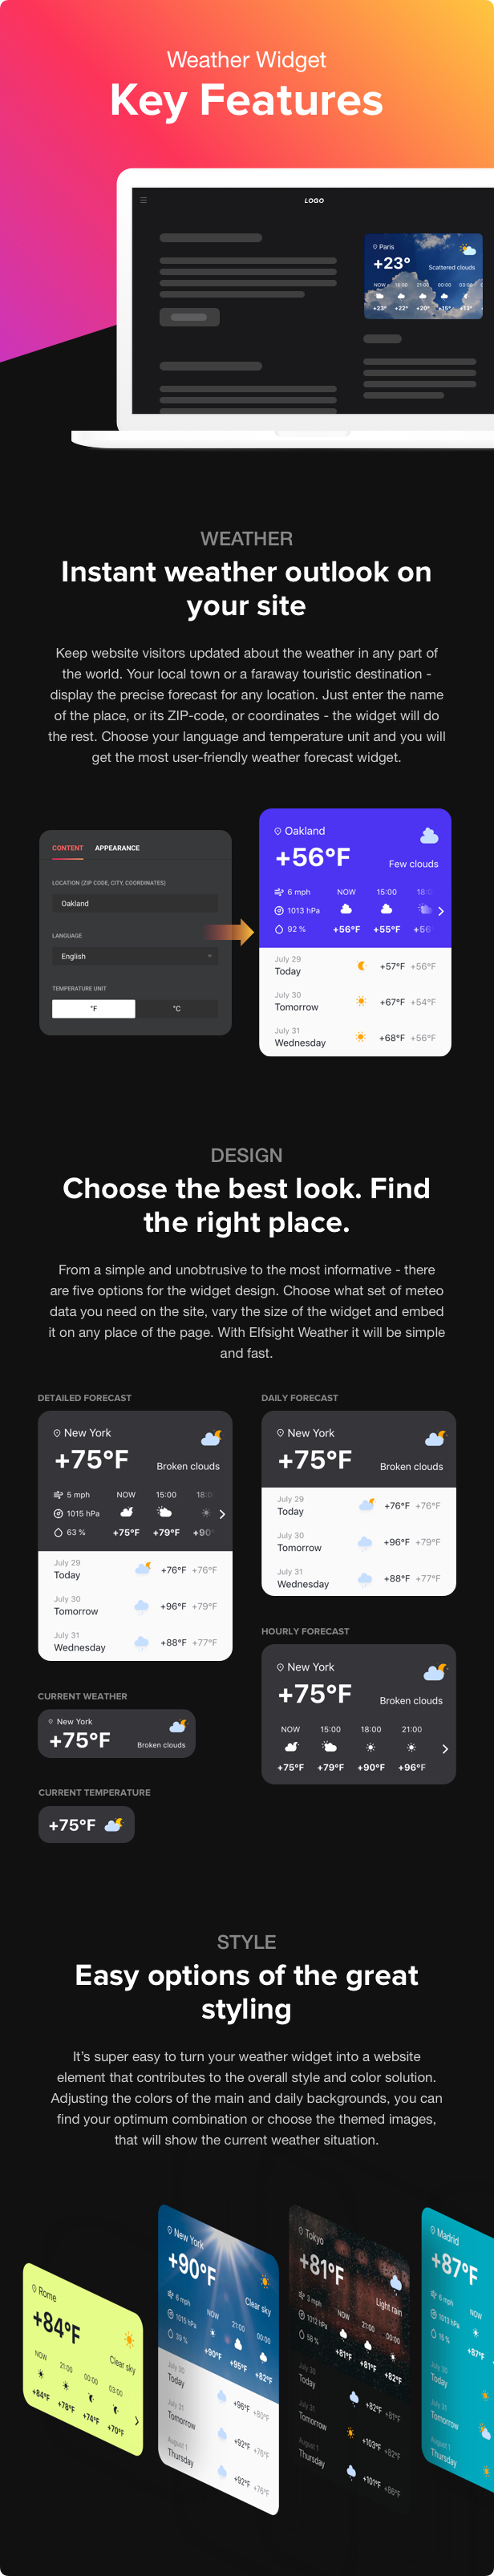 Weather Forecast - WordPress Weather Plugin - 2